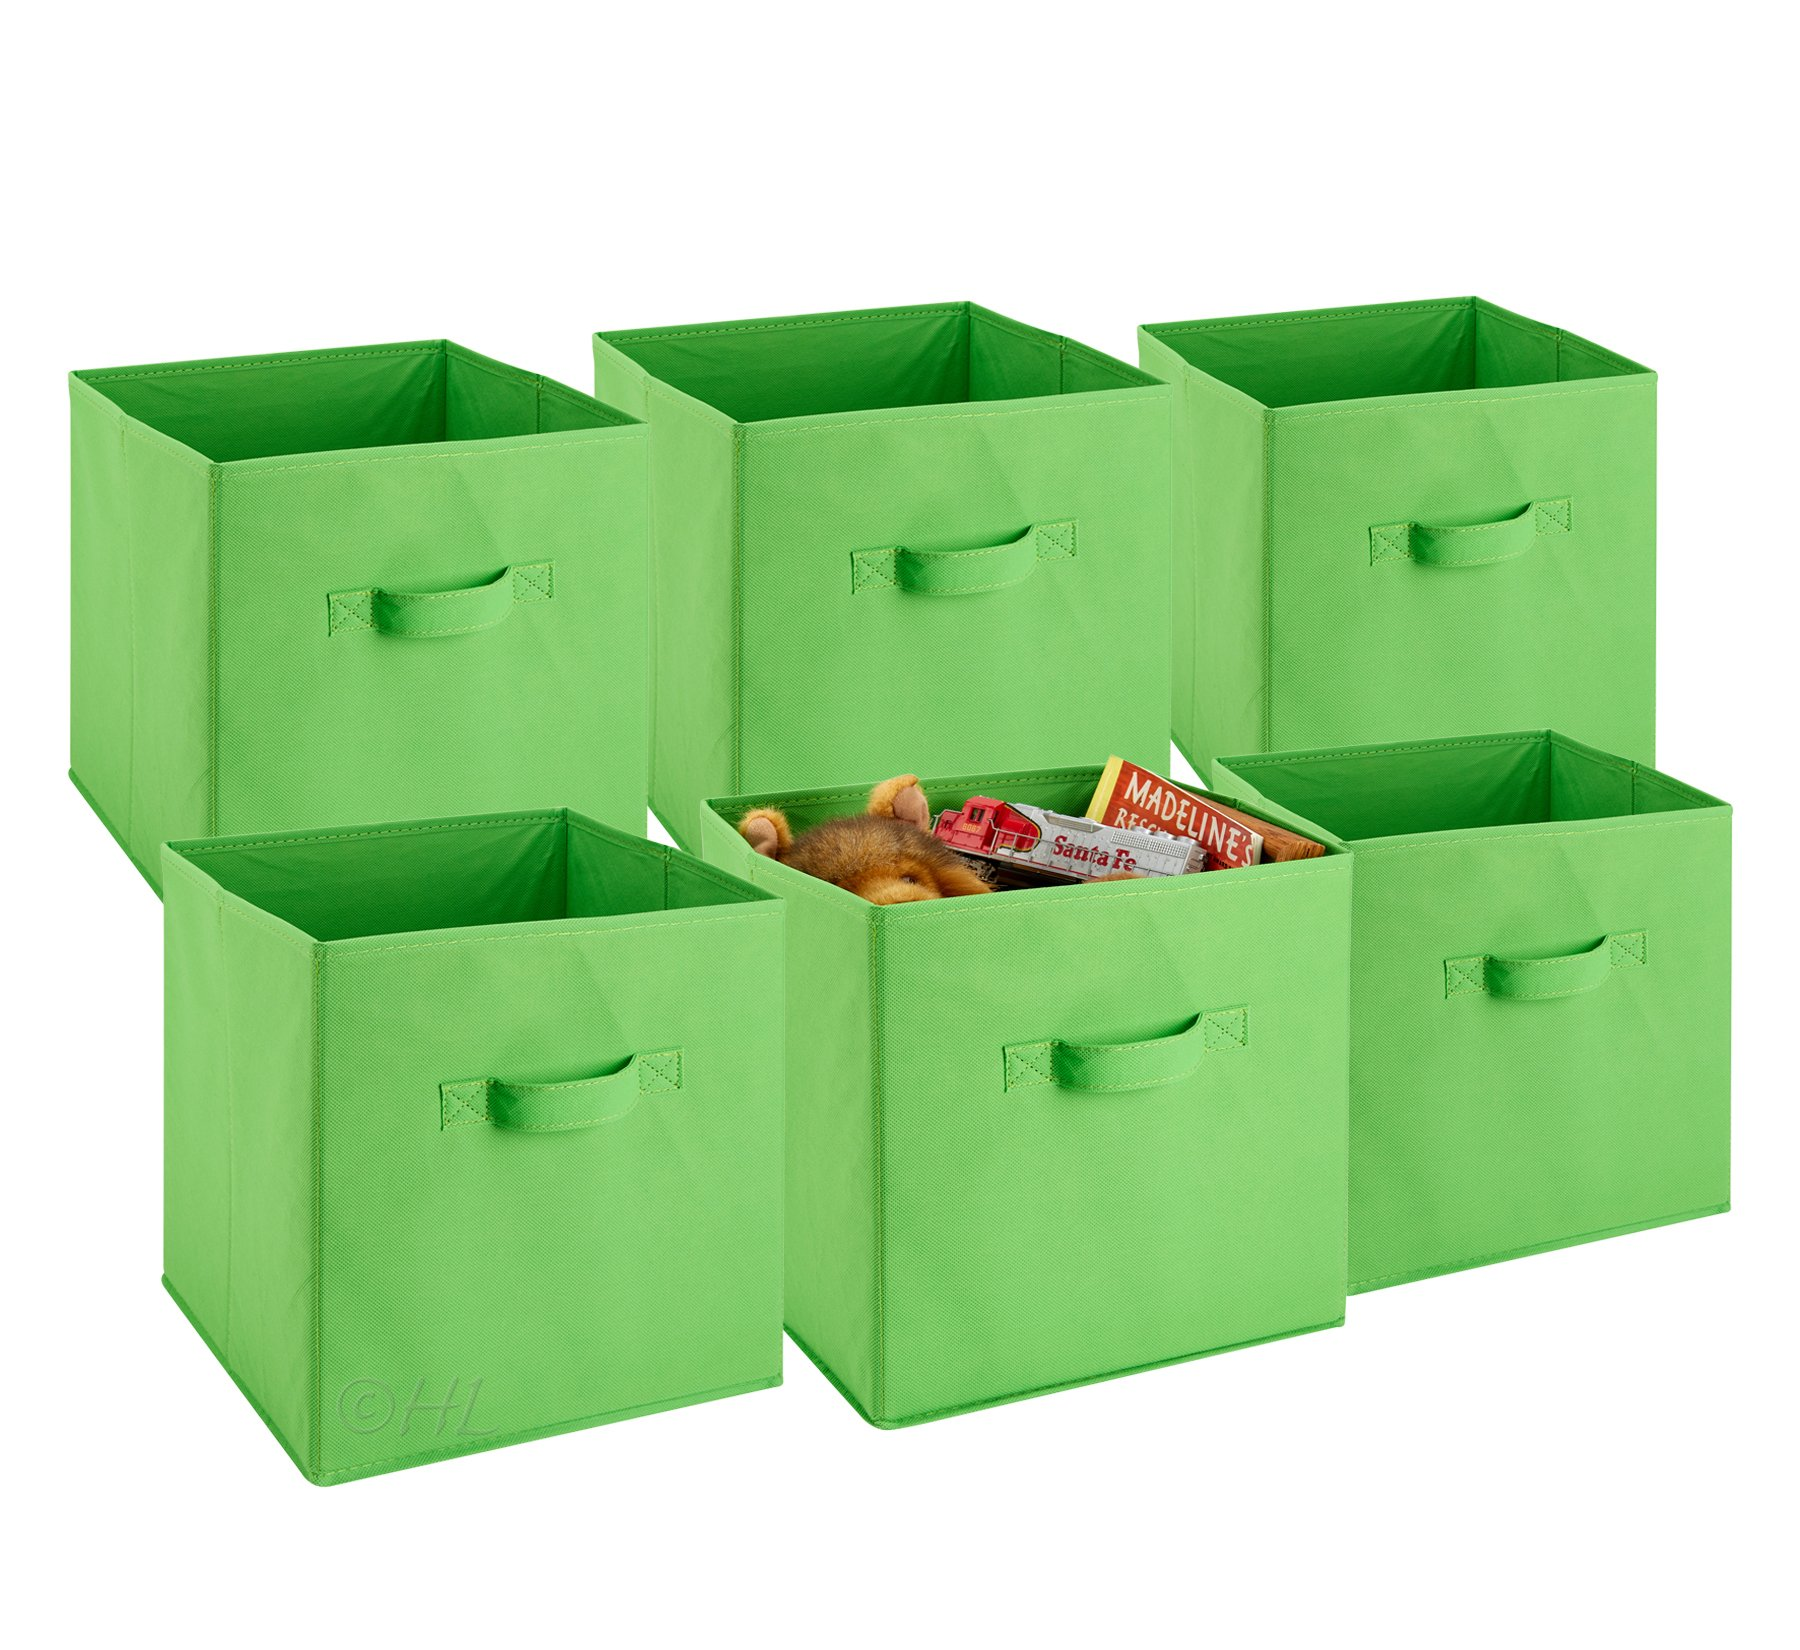 Get Quotations Foldable Cube Storage Bins 6 Pack These Decorative Fabric Cubes Are Collapsible And